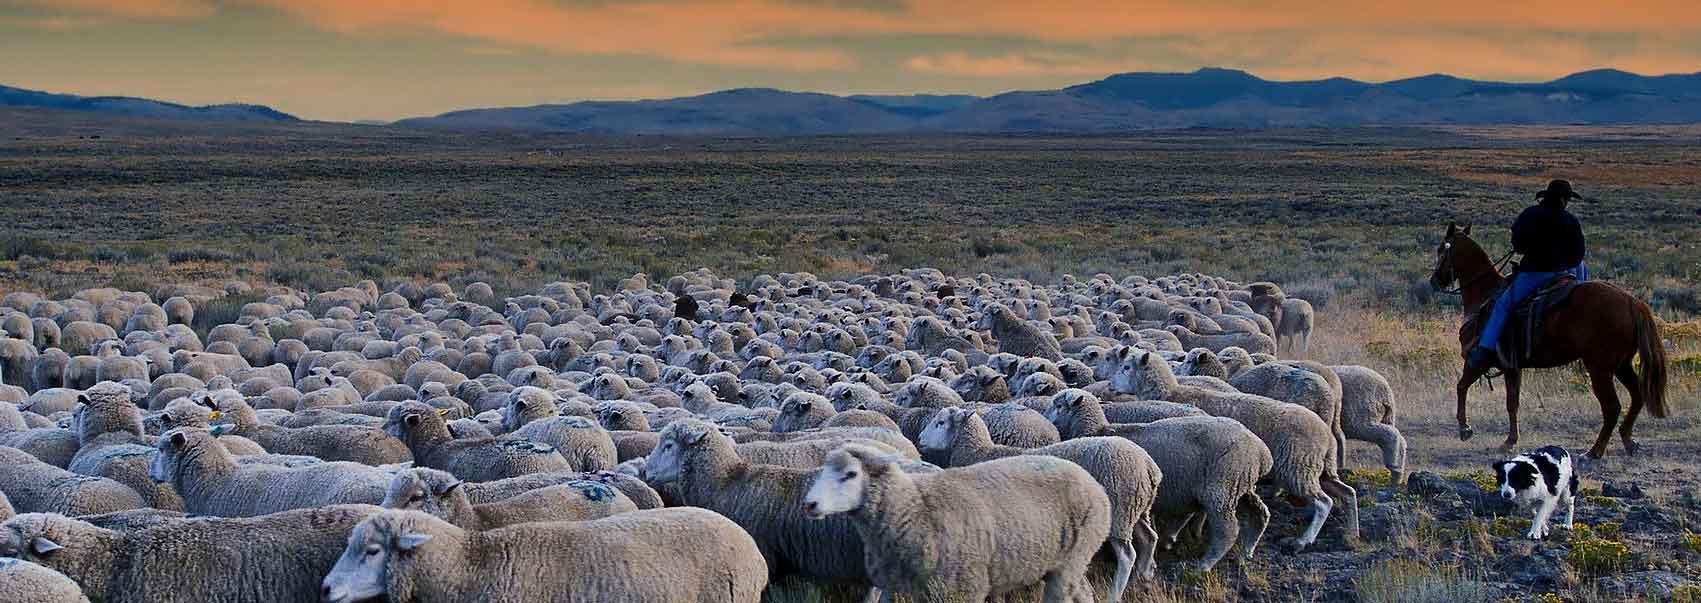 Idaho rancher herding sheep on the range